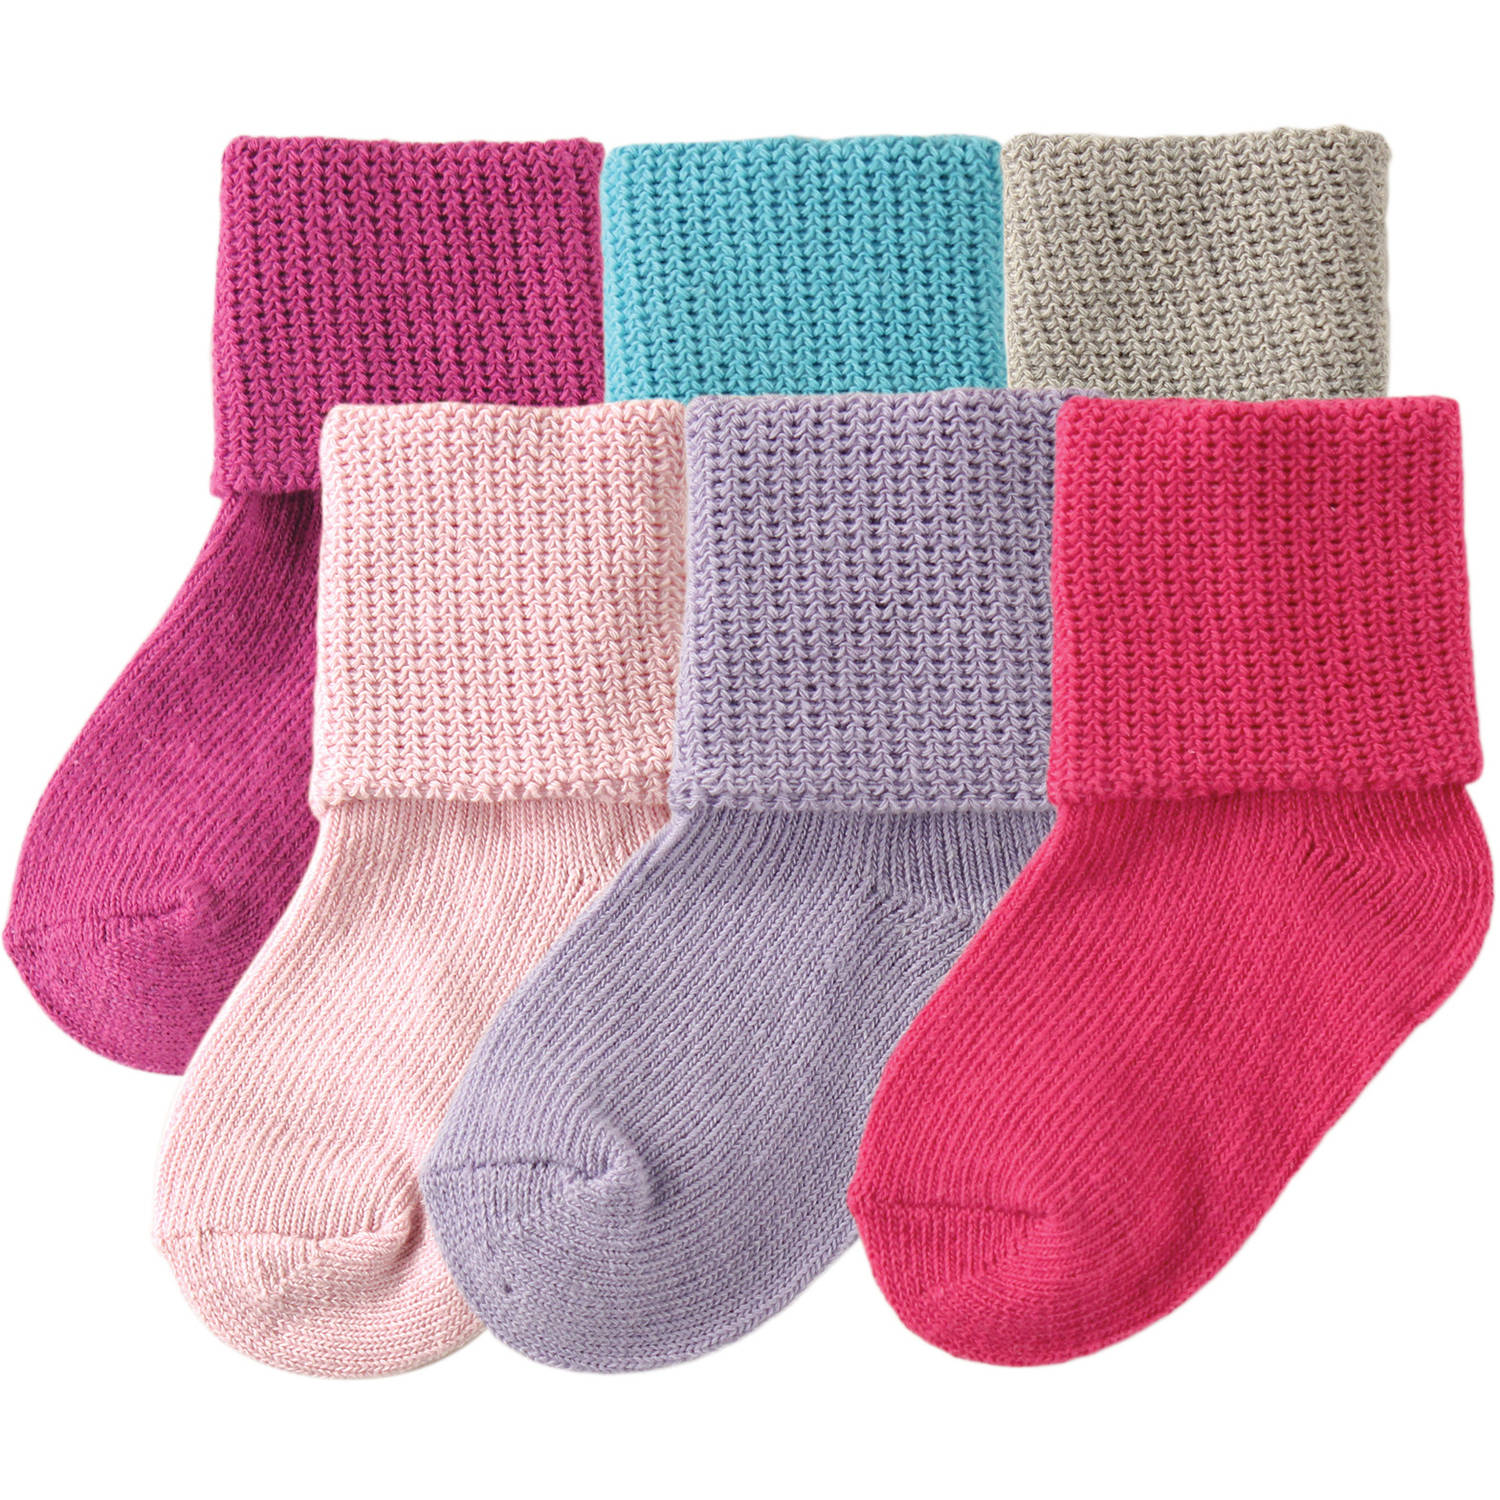 Luvable Friends Newborn Baby Girls Basic Cuff Socks 6-Pack